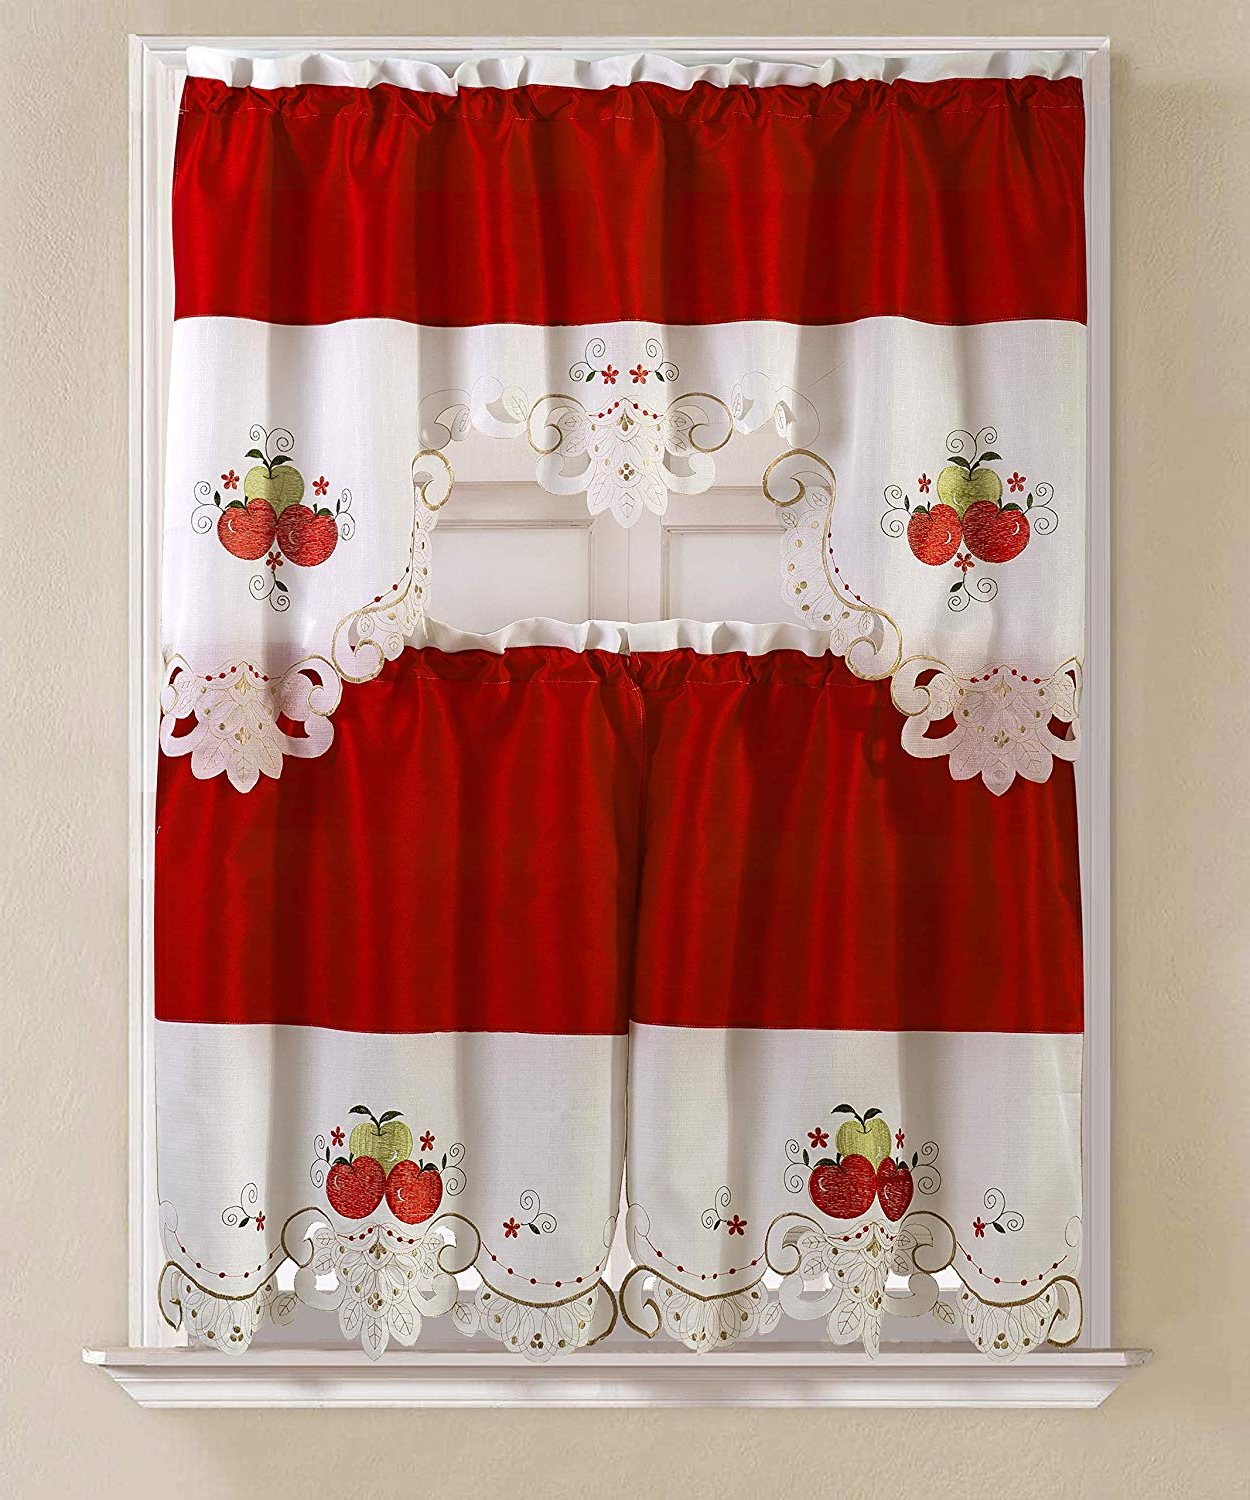 Rt Designers Collection Noble Embroidered Tier & Valance Kitchen Curtain Set, Apple With Regard To Well Liked Urban Embroidered Tier And Valance Kitchen Curtain Tier Sets (View 7 of 20)